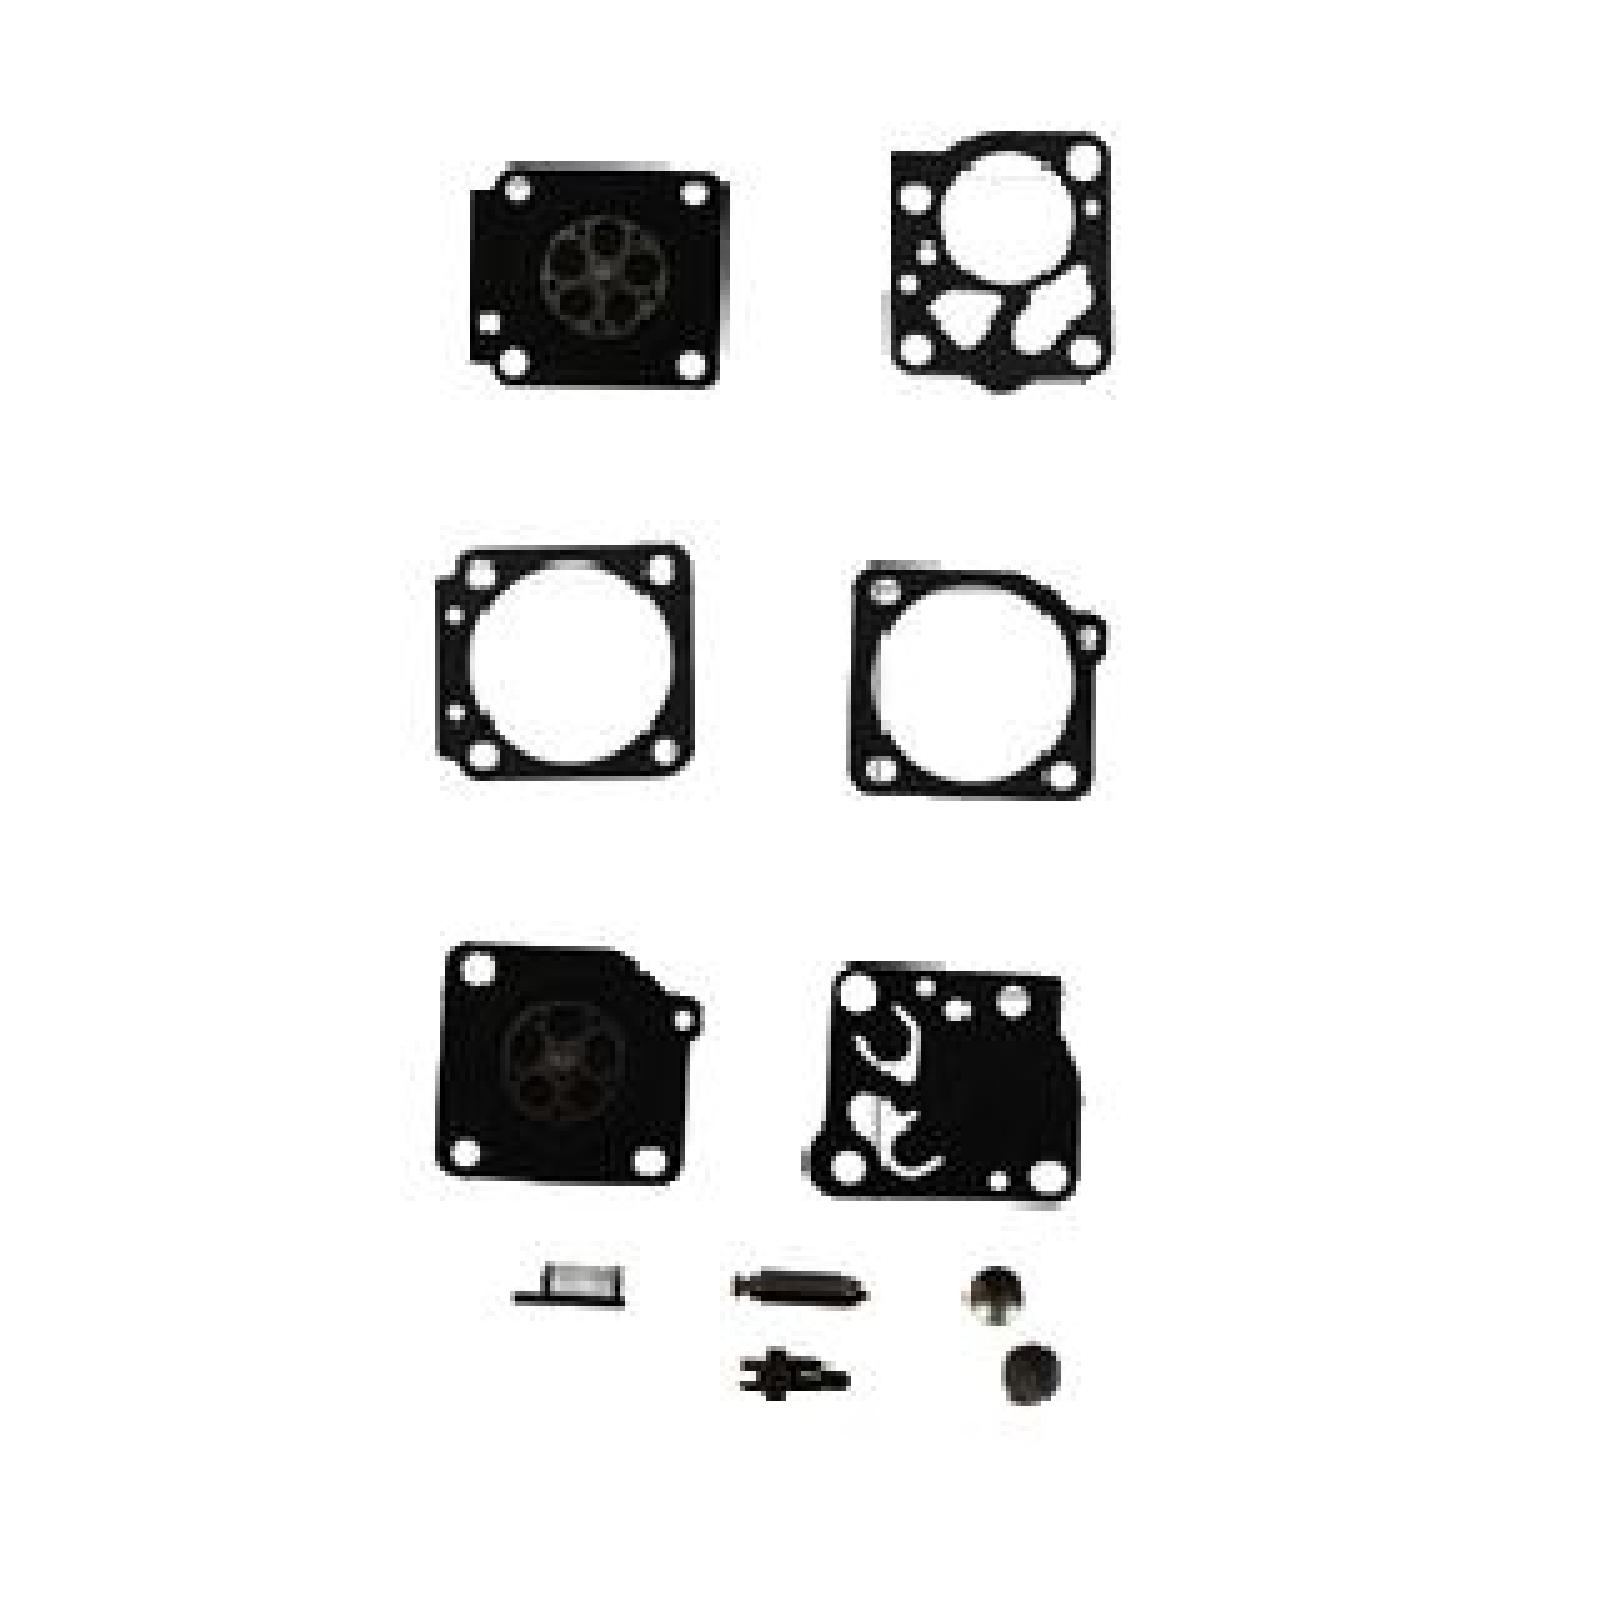 REBUILD KIT/XILI part# RB71 by USA Zama, Inc.